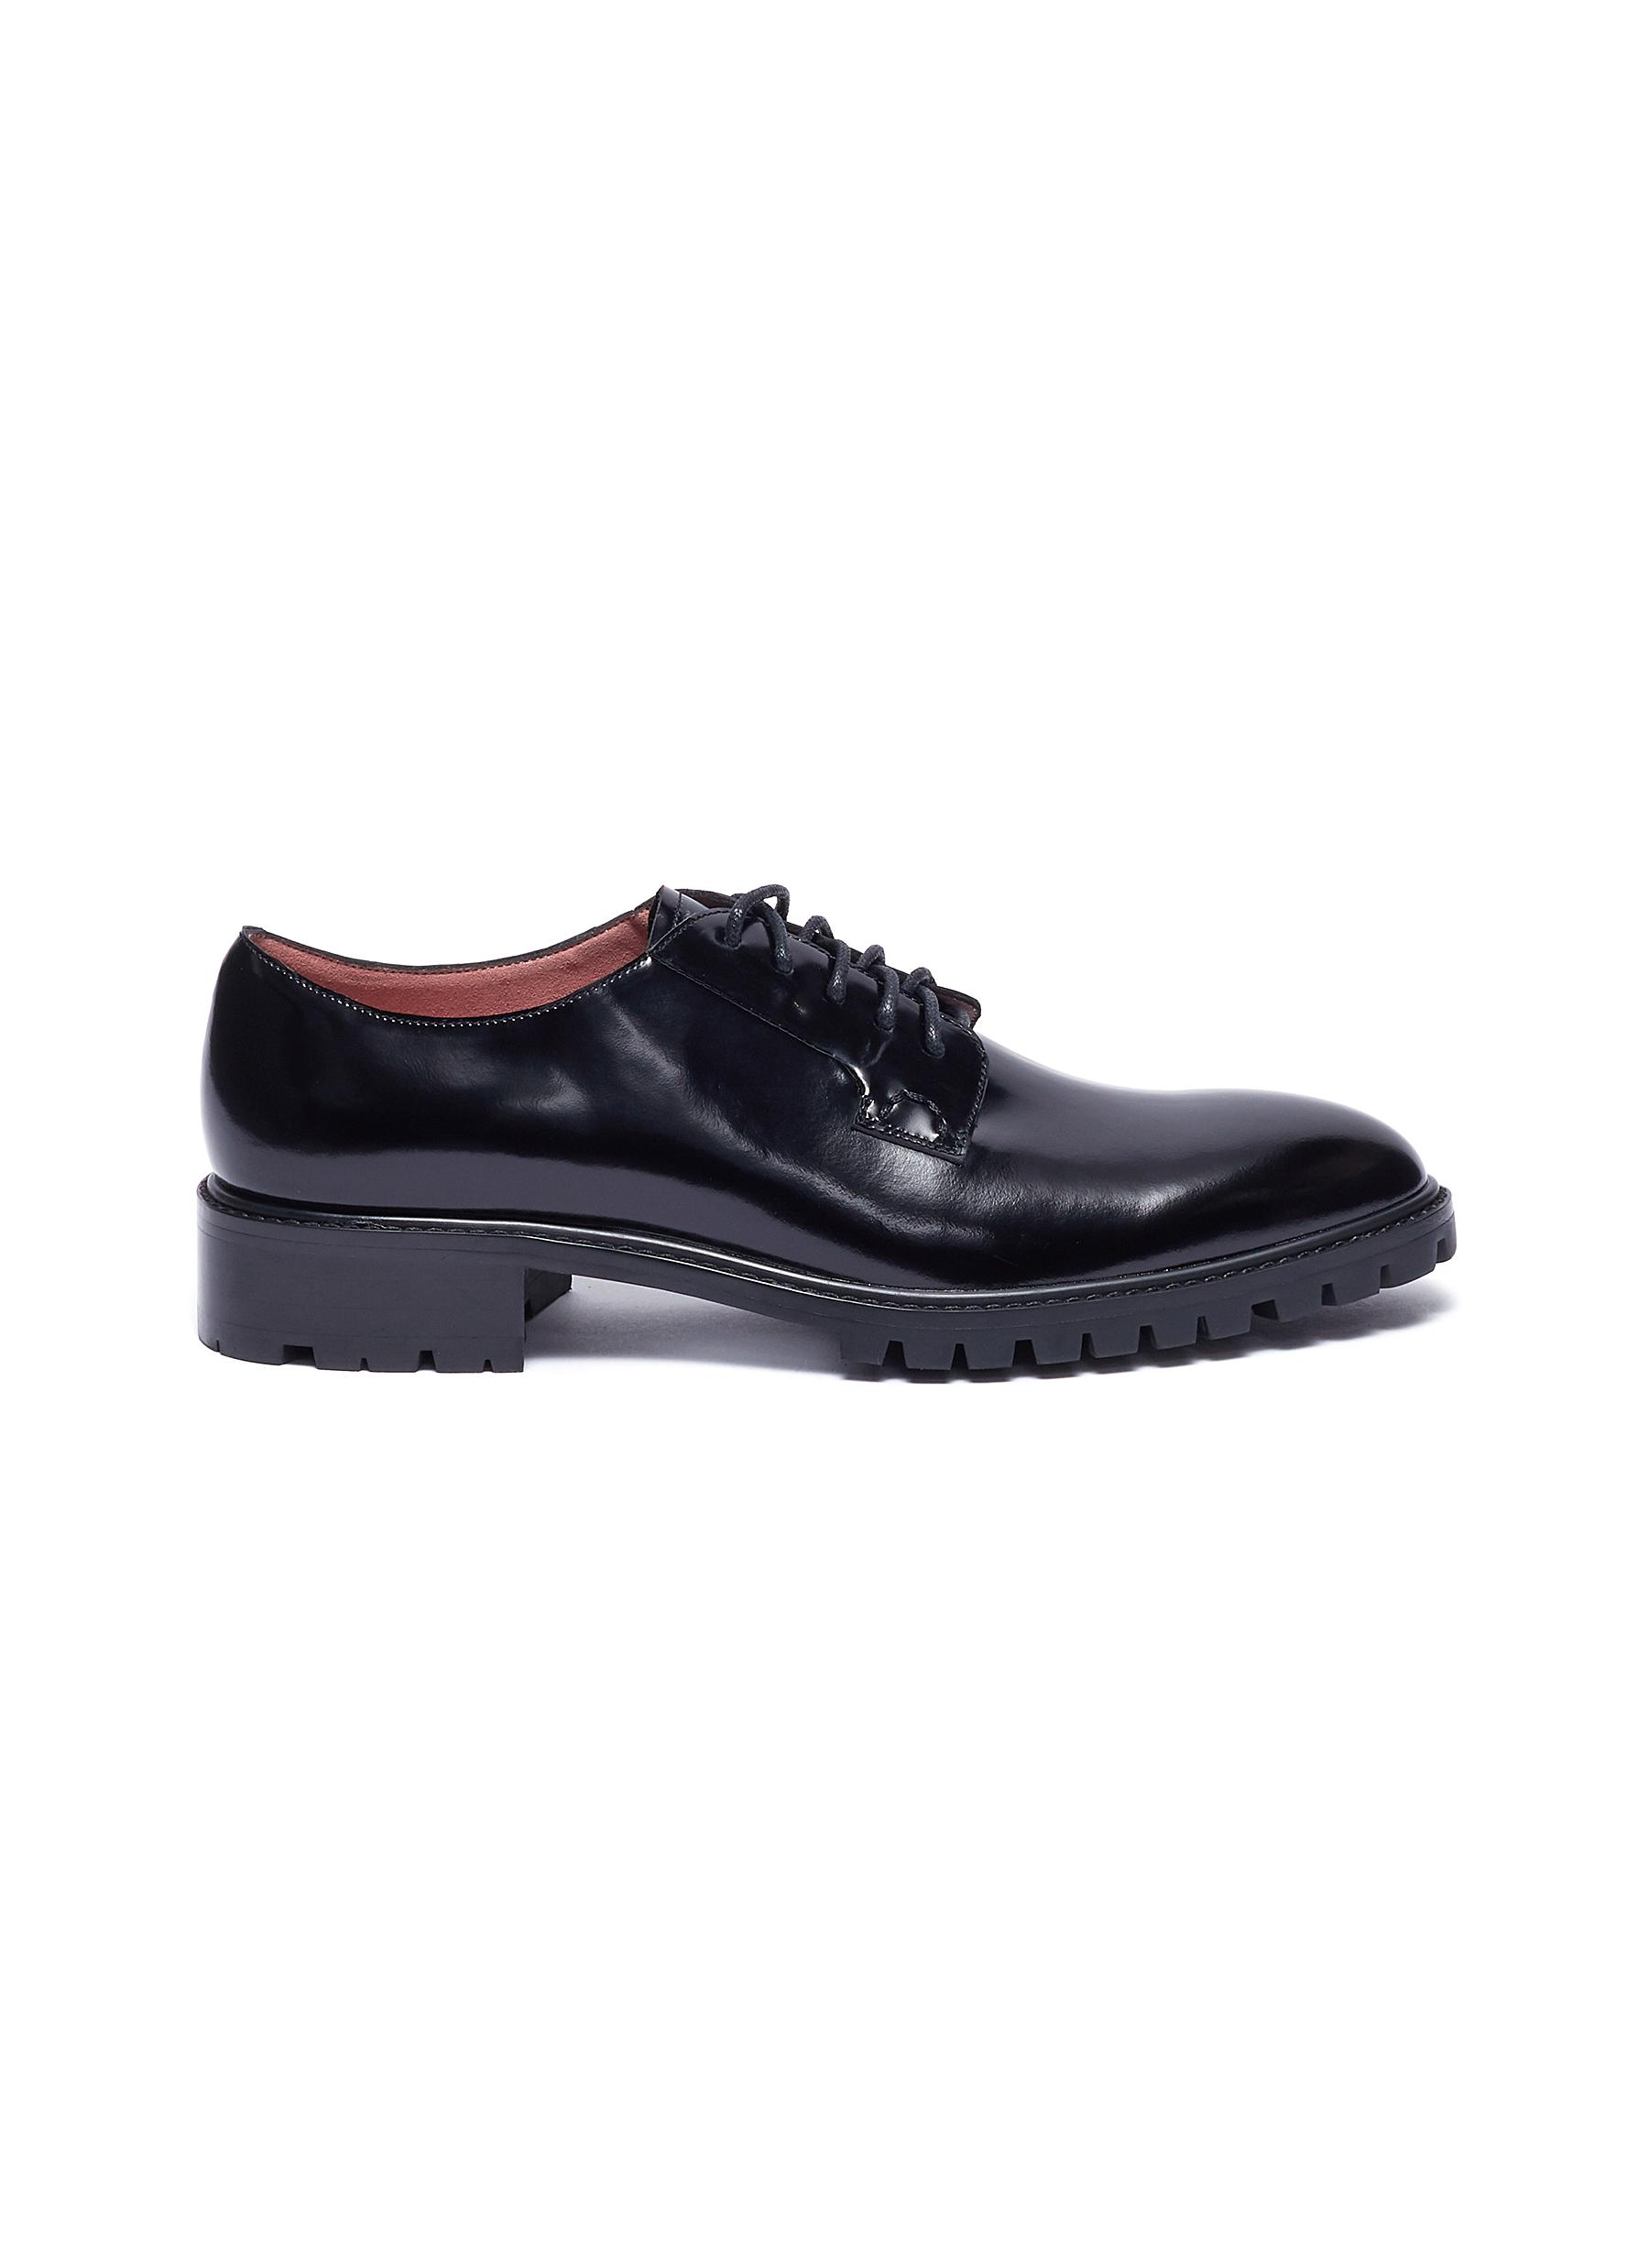 Scott leather oxfords by Pedder Red